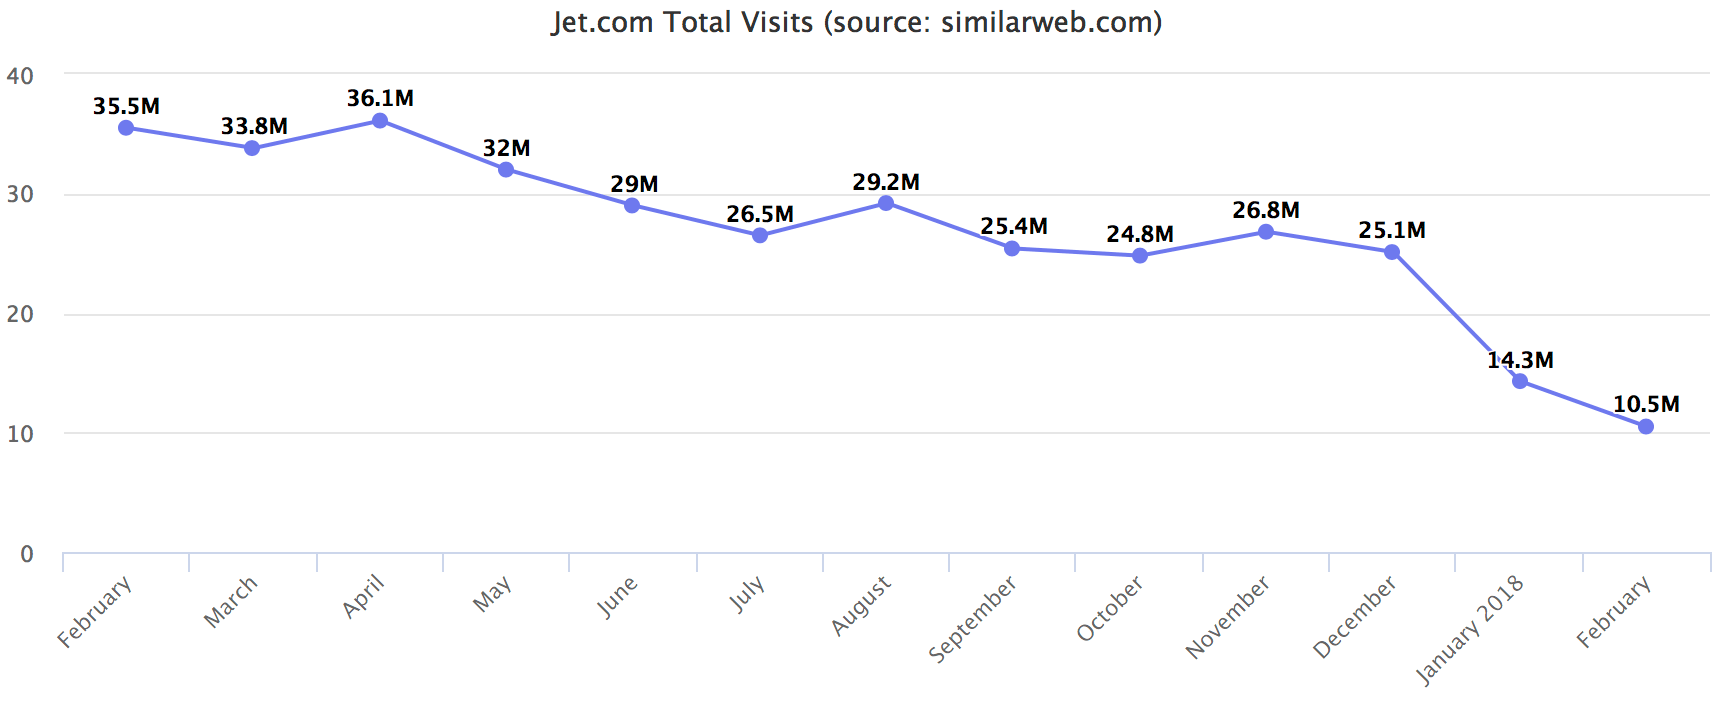 Jet.com Total Visits (source: similarweb.com)